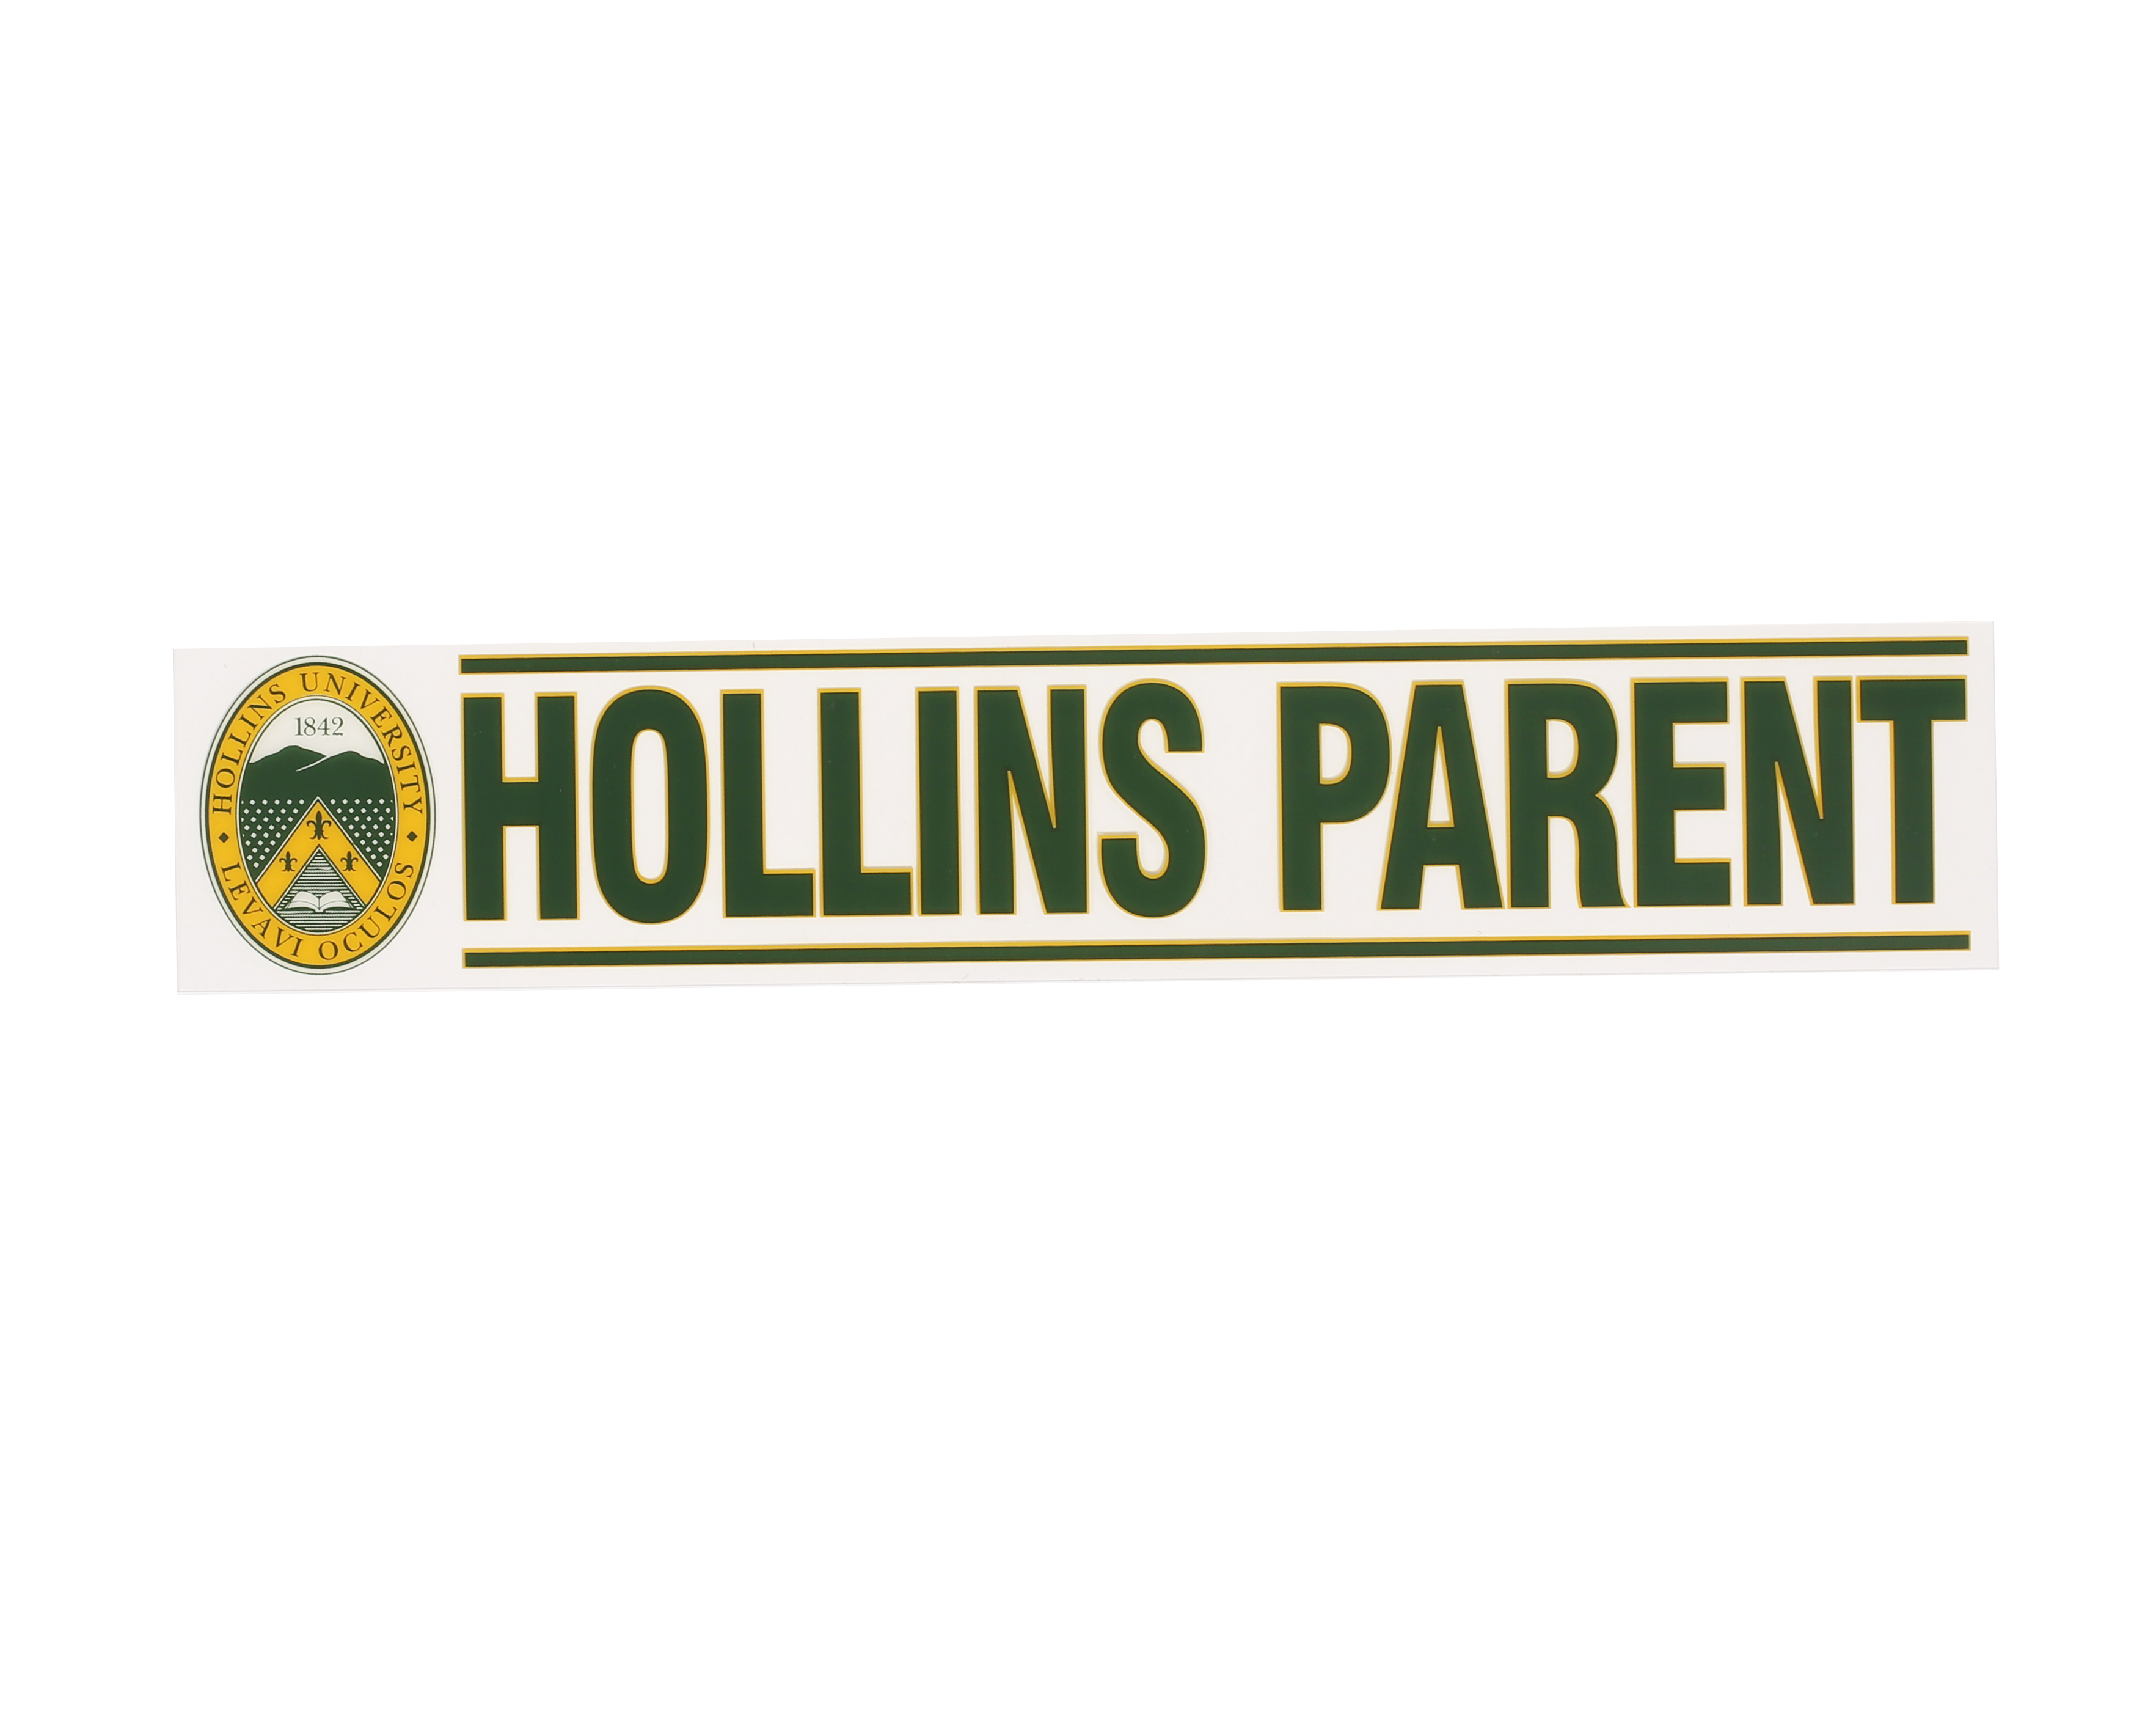 Hollins Parent Decal